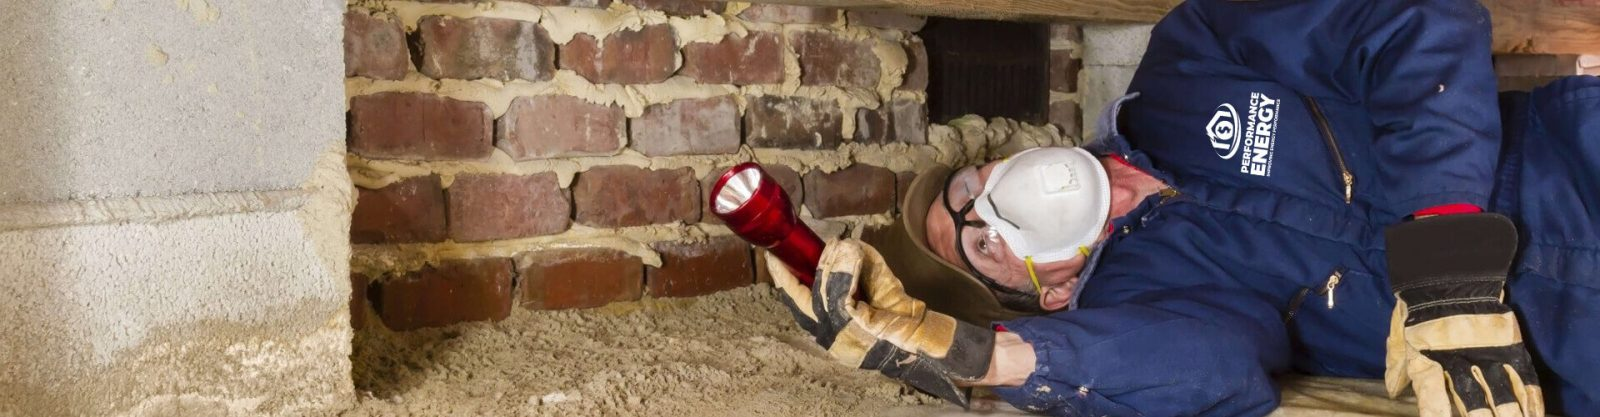 Crawl Space Insulation & Encapsulation Services